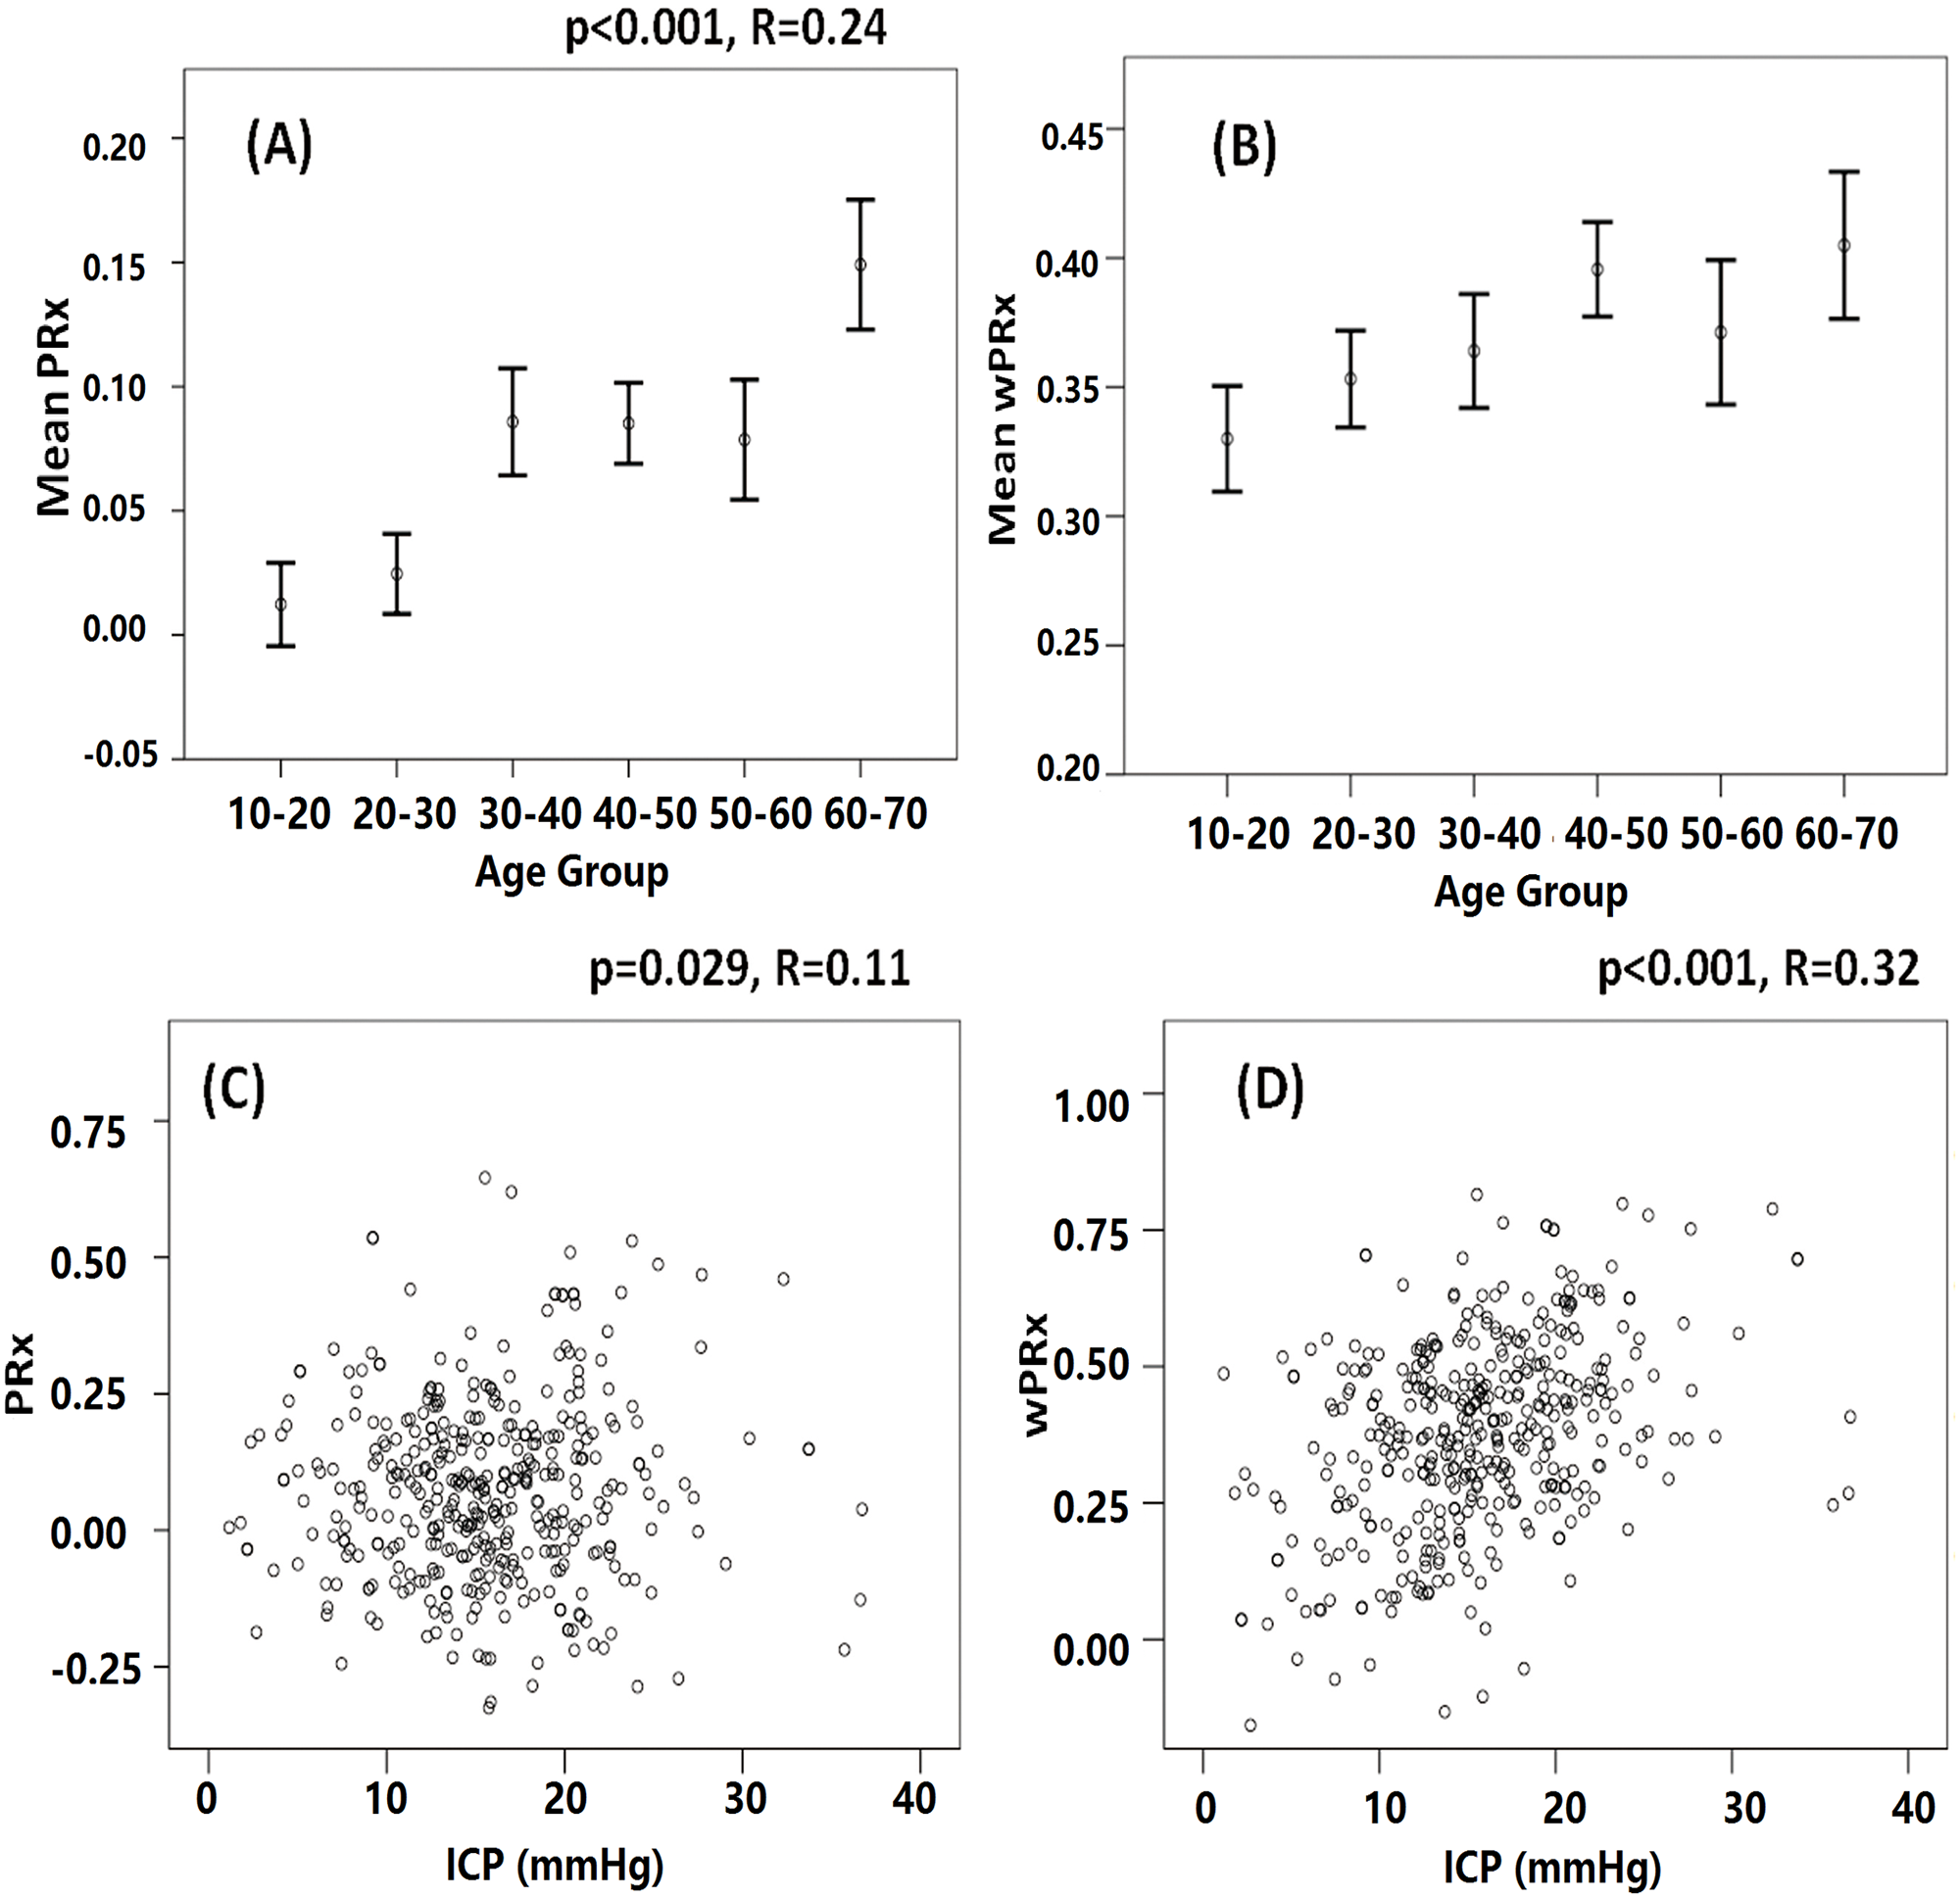 The relationship between cerebral pressure reactivity parameters, age, and intracranial pressure (ICP).